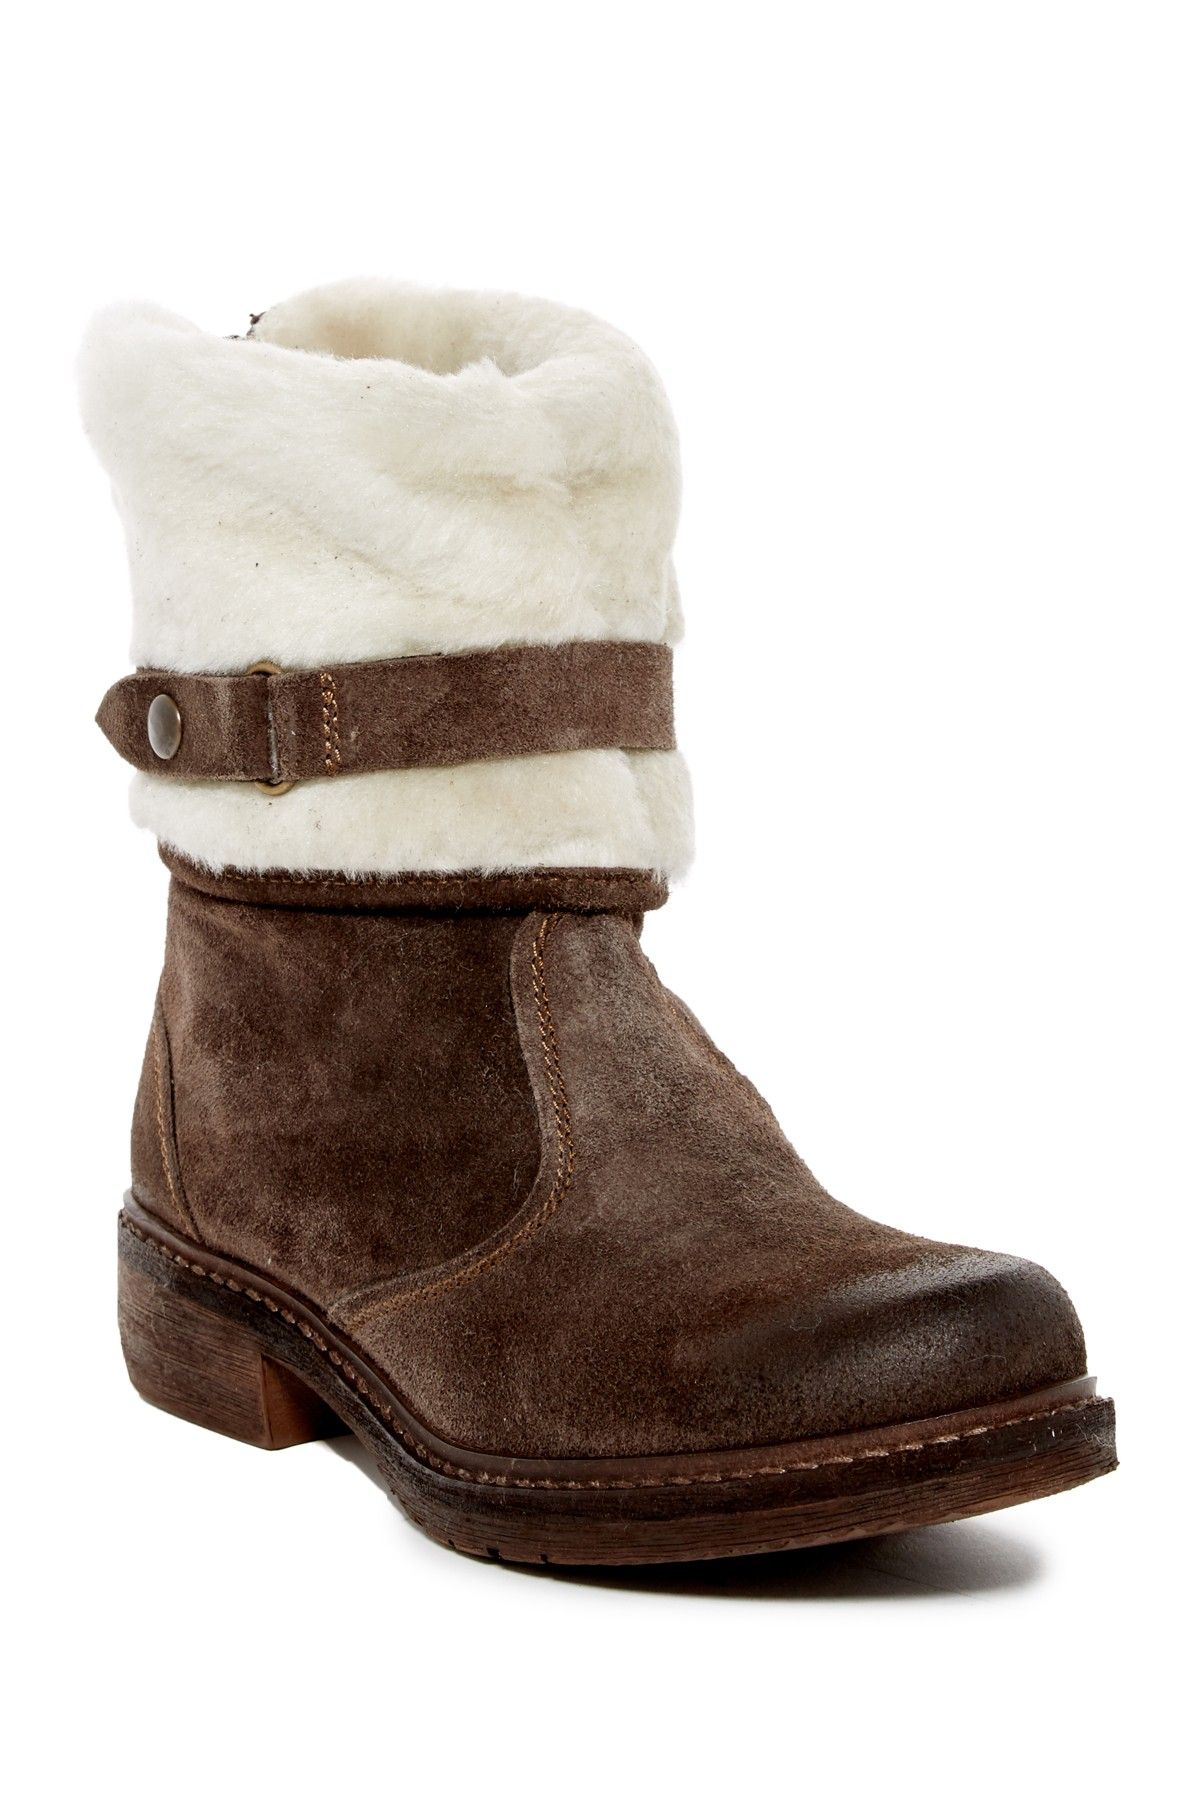 Manas   Faux Fur Lined Boot   Nordstrom